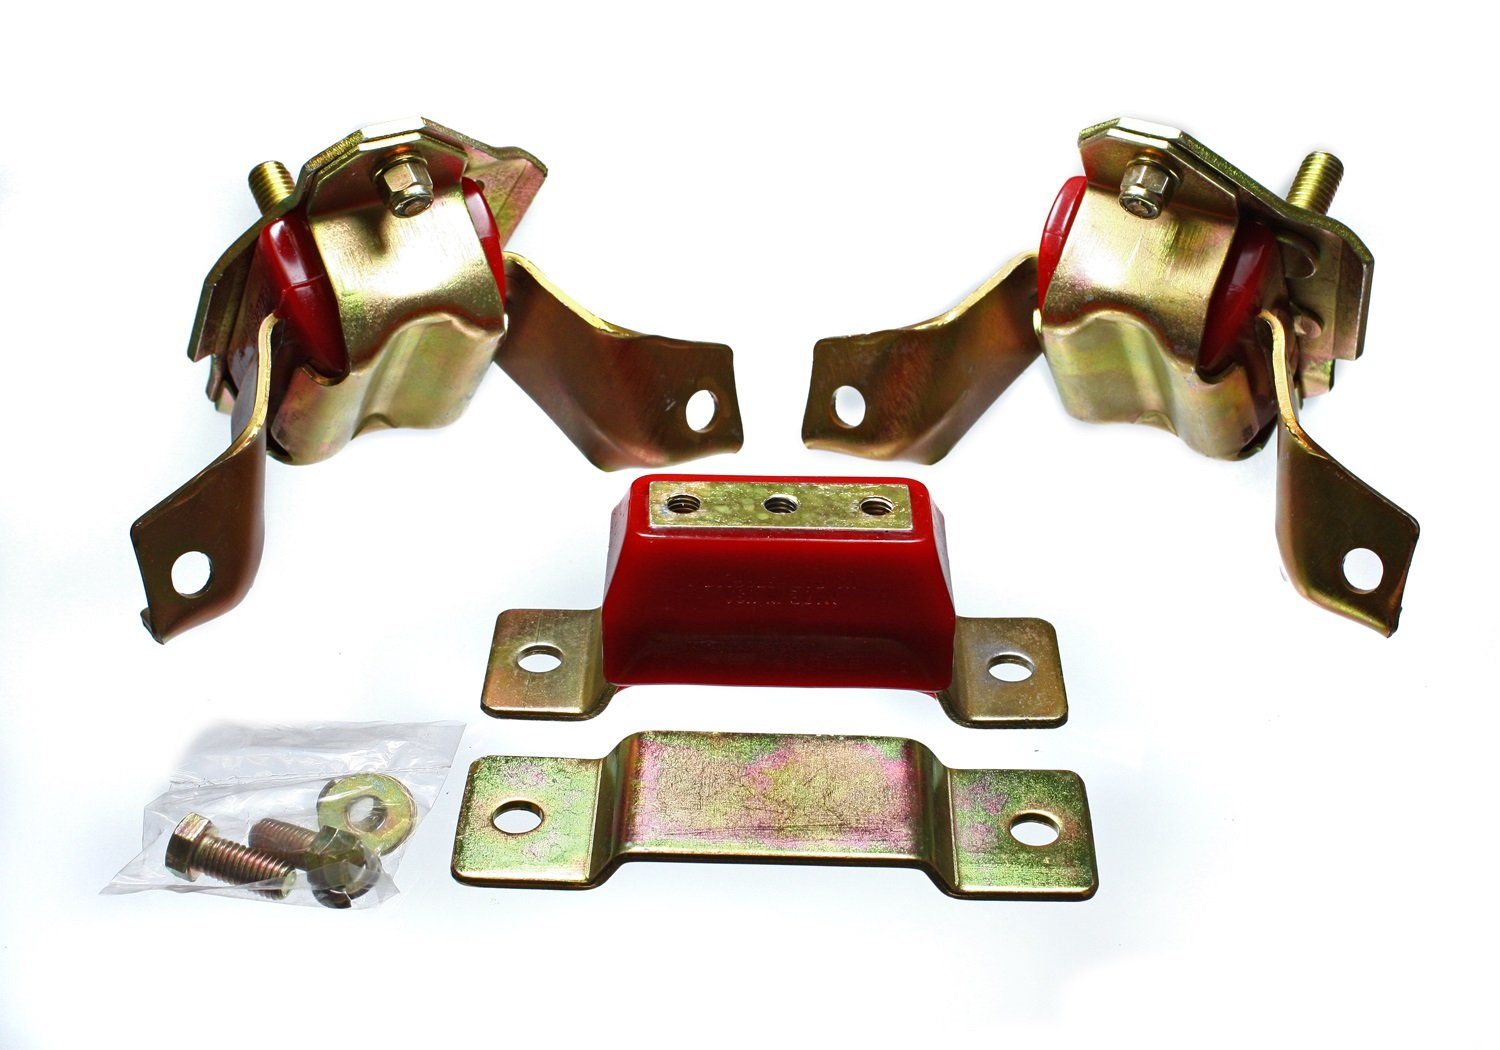 Energy Suspension 4.1124R Motor Mount and Transmission Set for Mustang